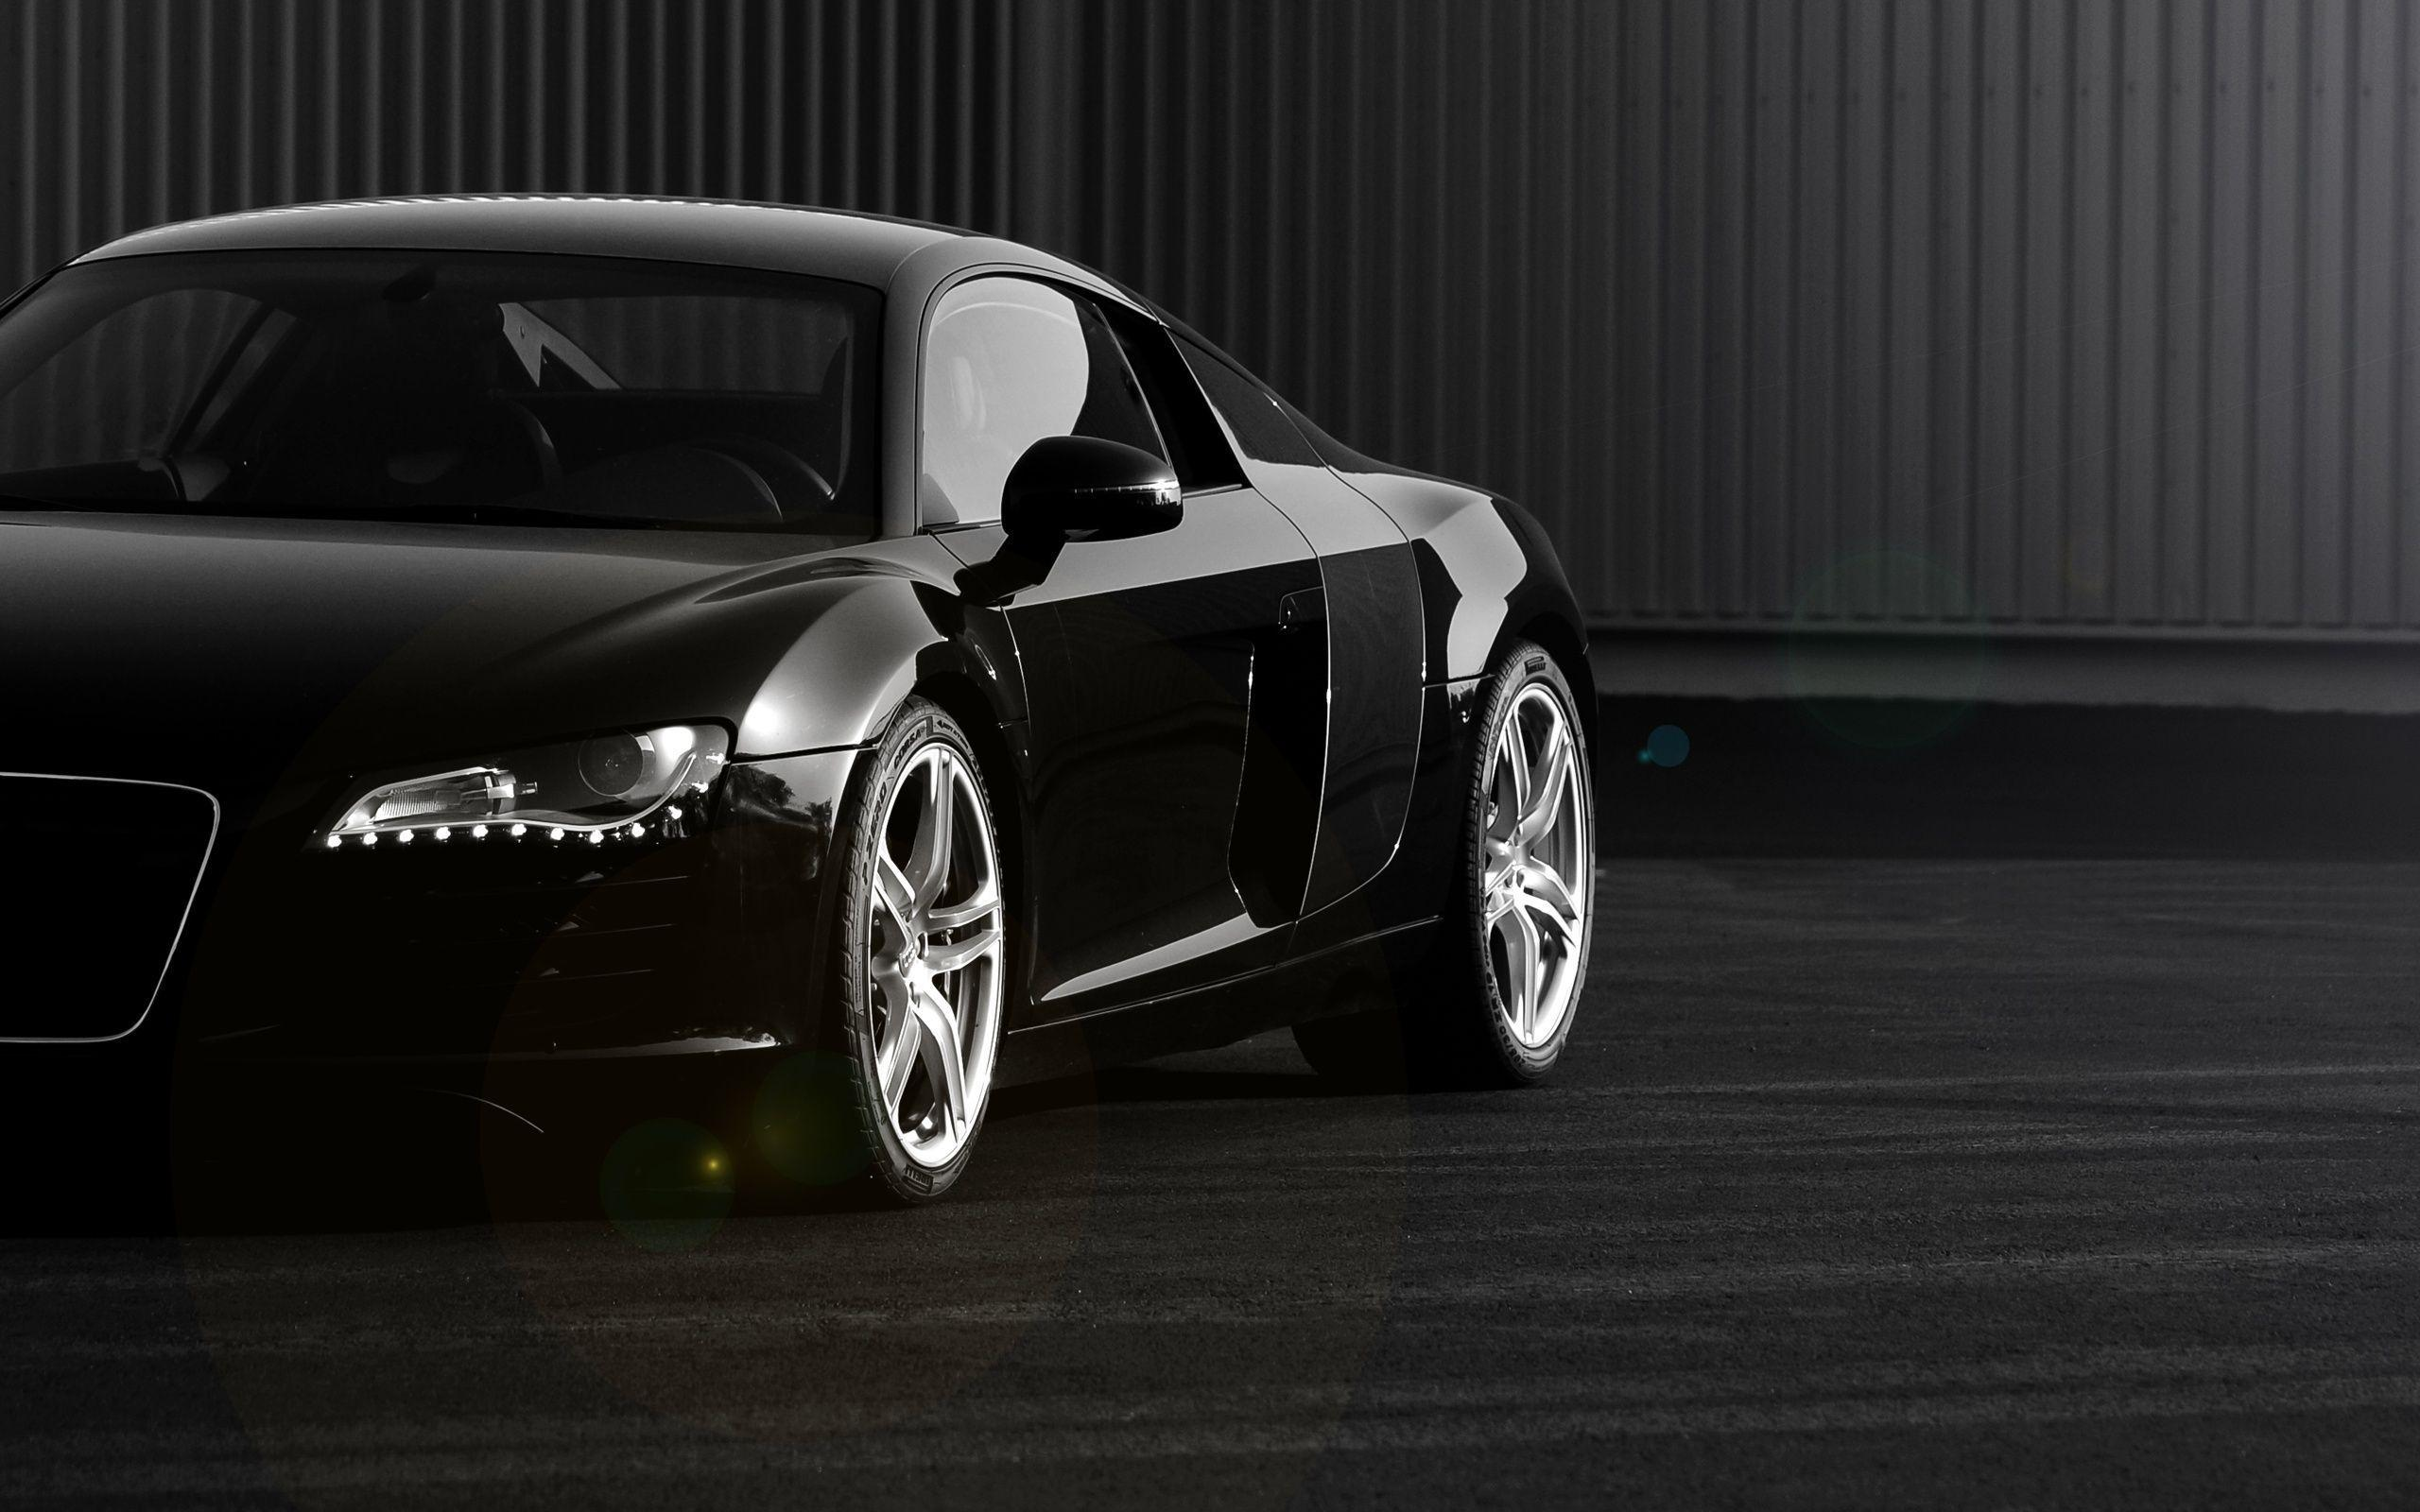 Abstract audi r8 on black background stock photo picture and in addition hd audi r8 wallpaper